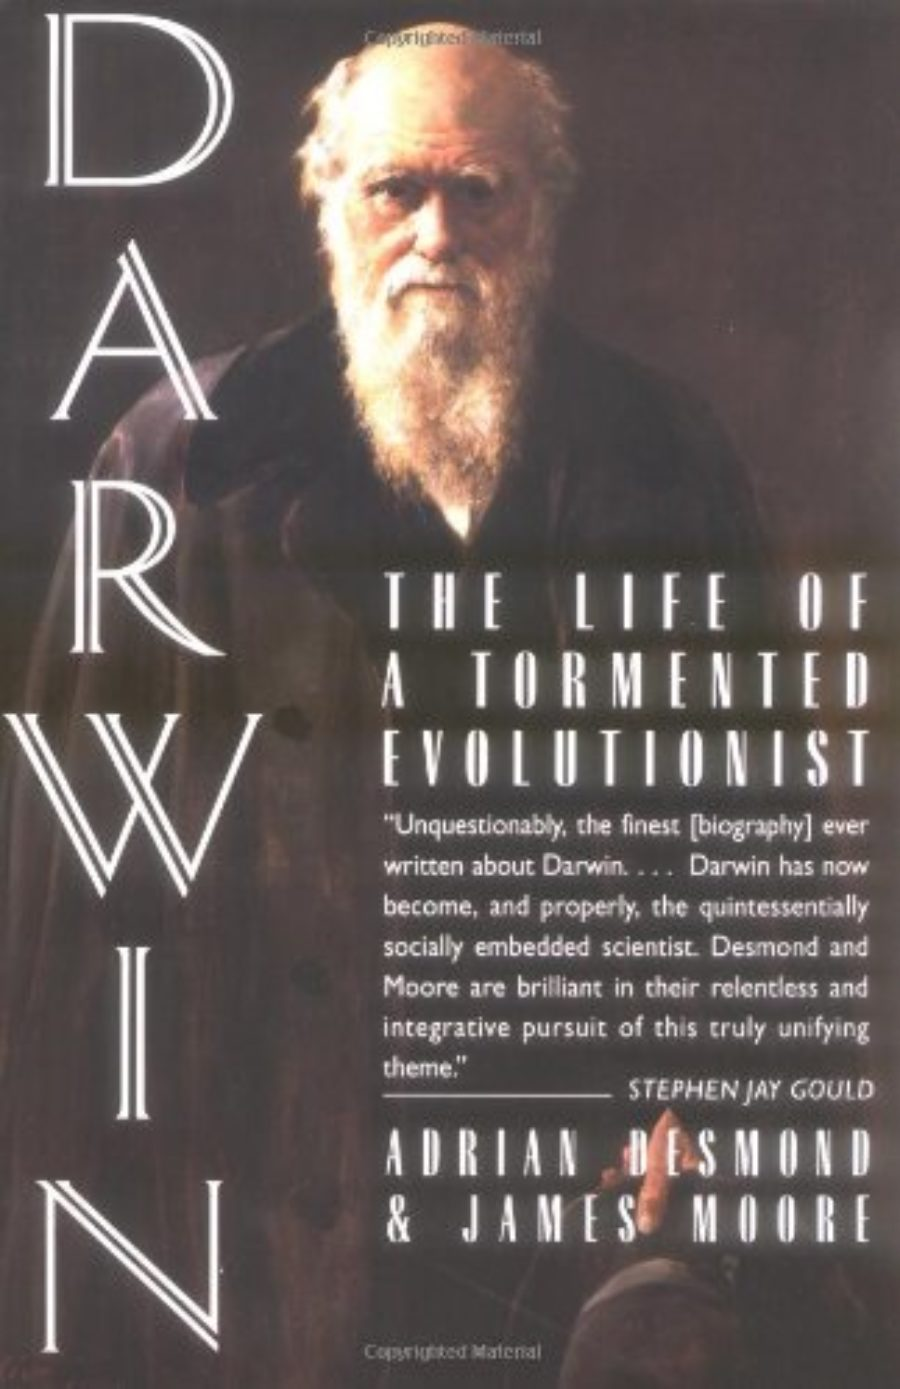 Cover of Darwin: The Life of a Tormented Evolutionist